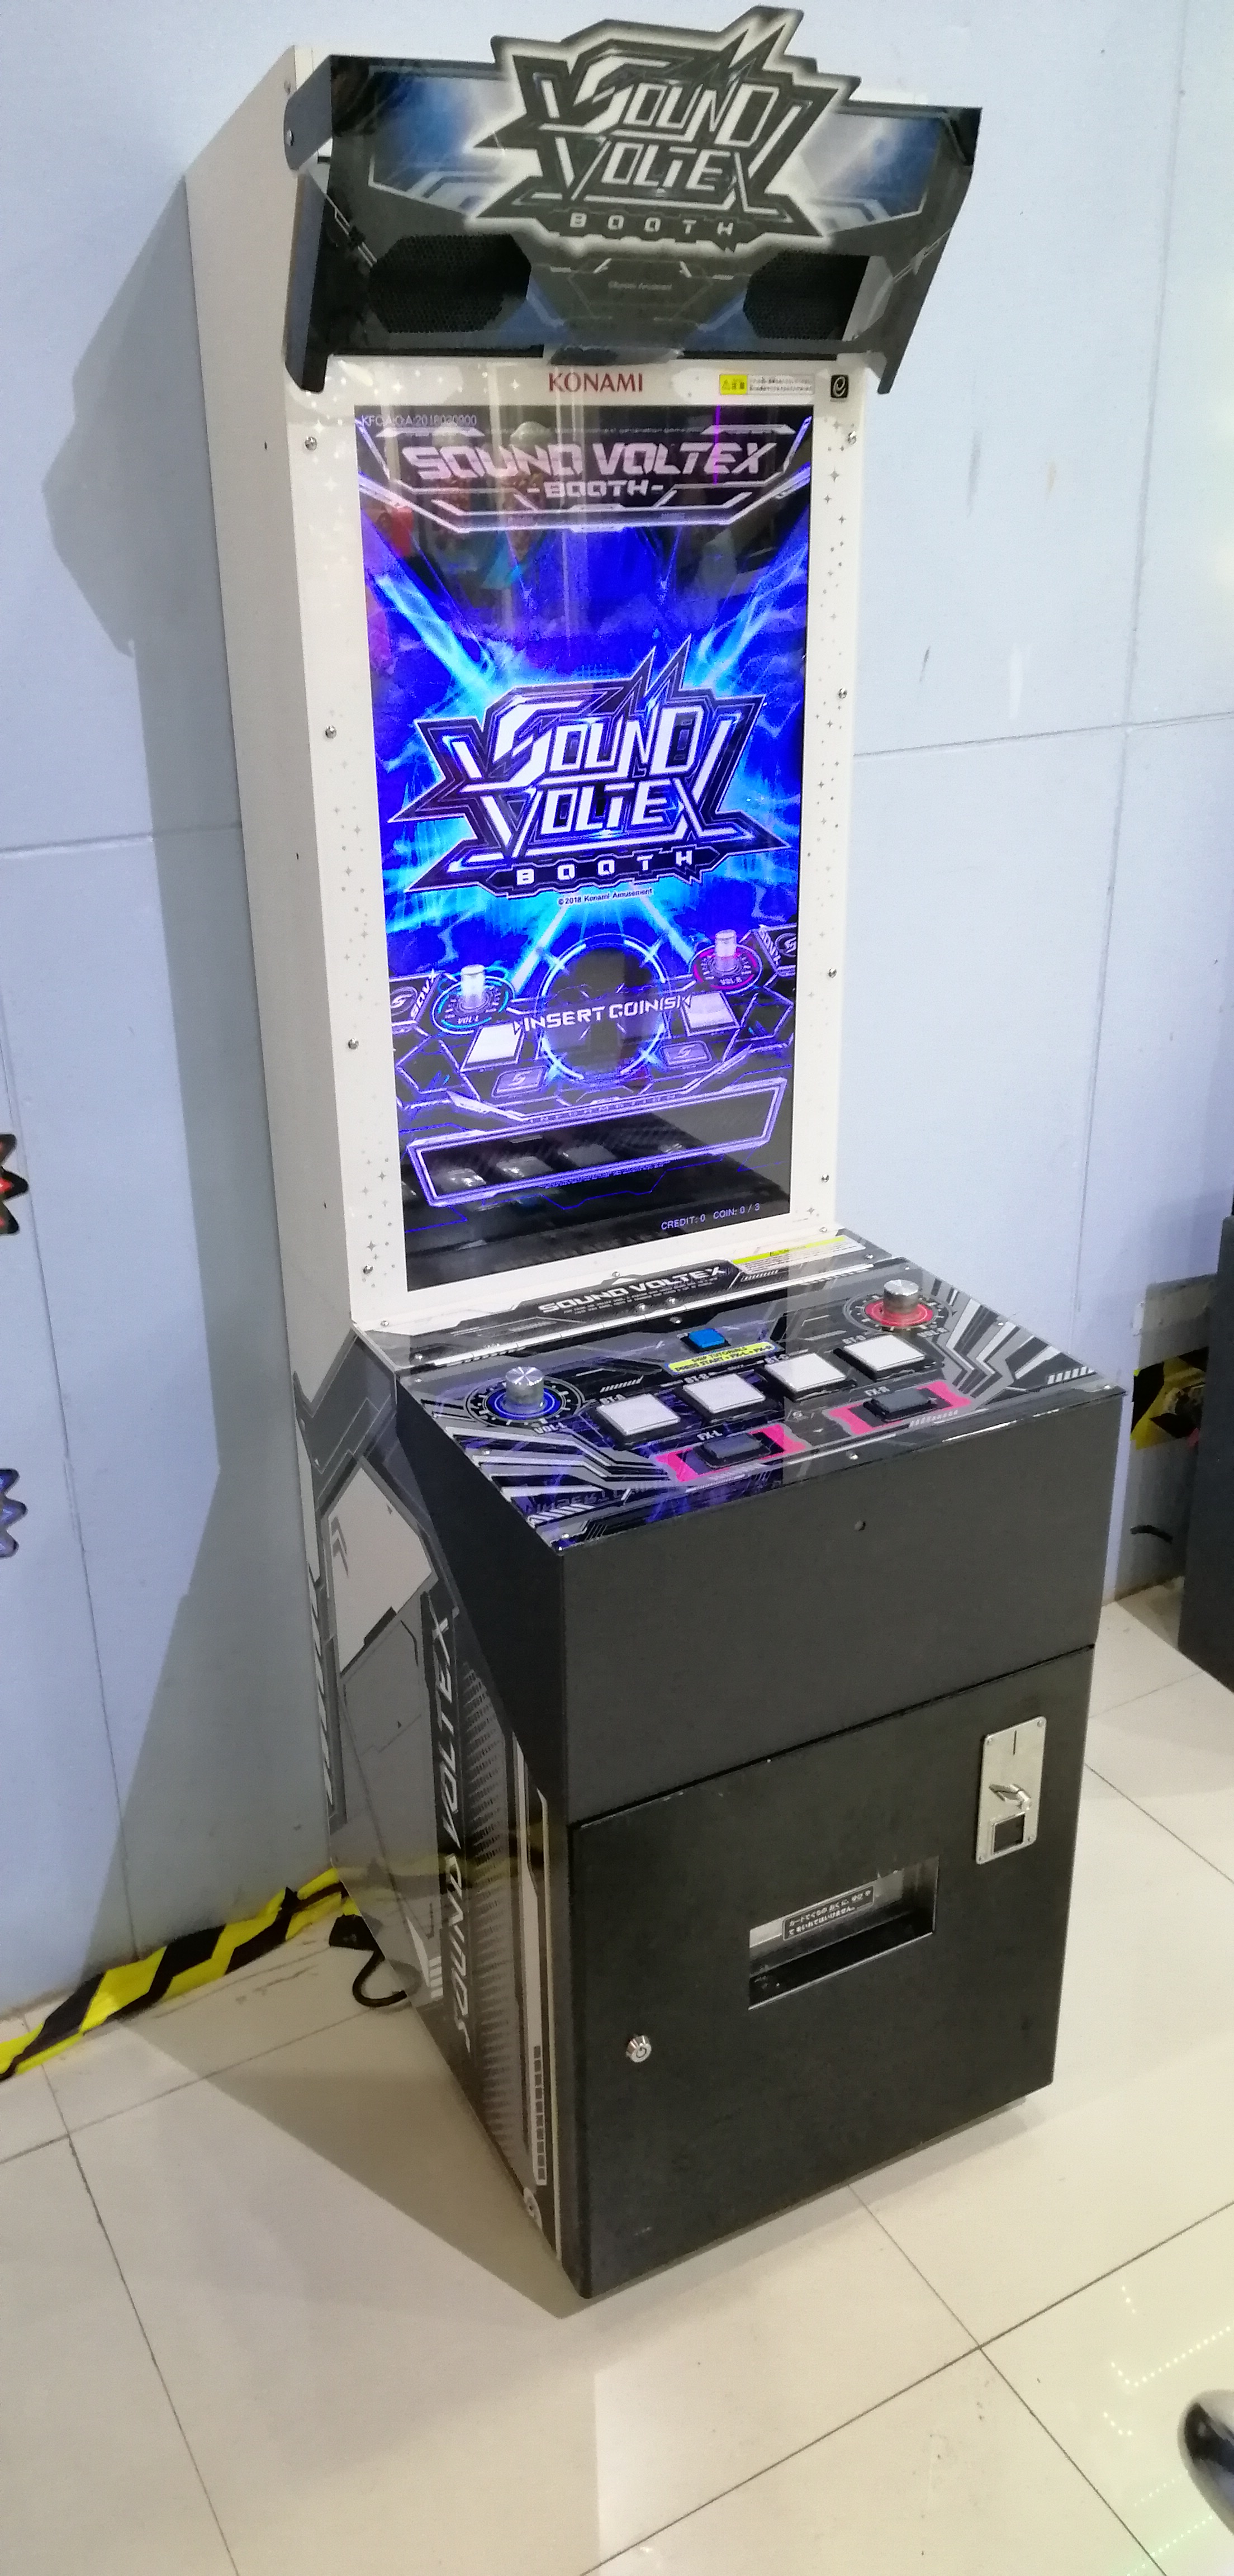 Sound Voltex BOOTH - Arcade Locations - Picture Gallery - ZIv